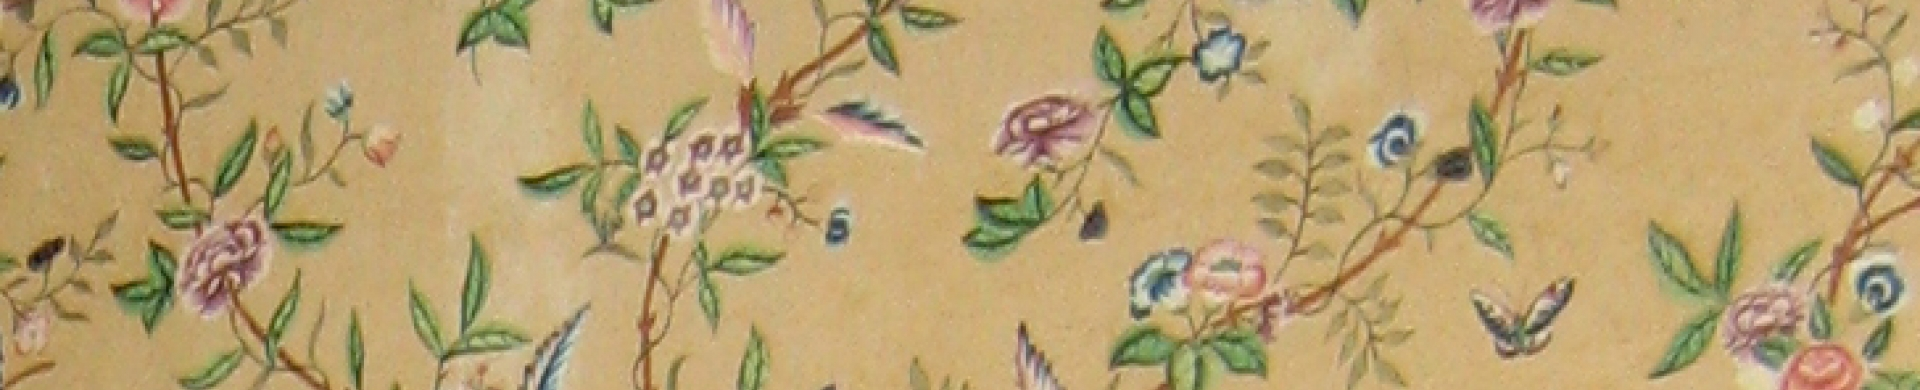 kind of unique export product, 18th century wallpaper